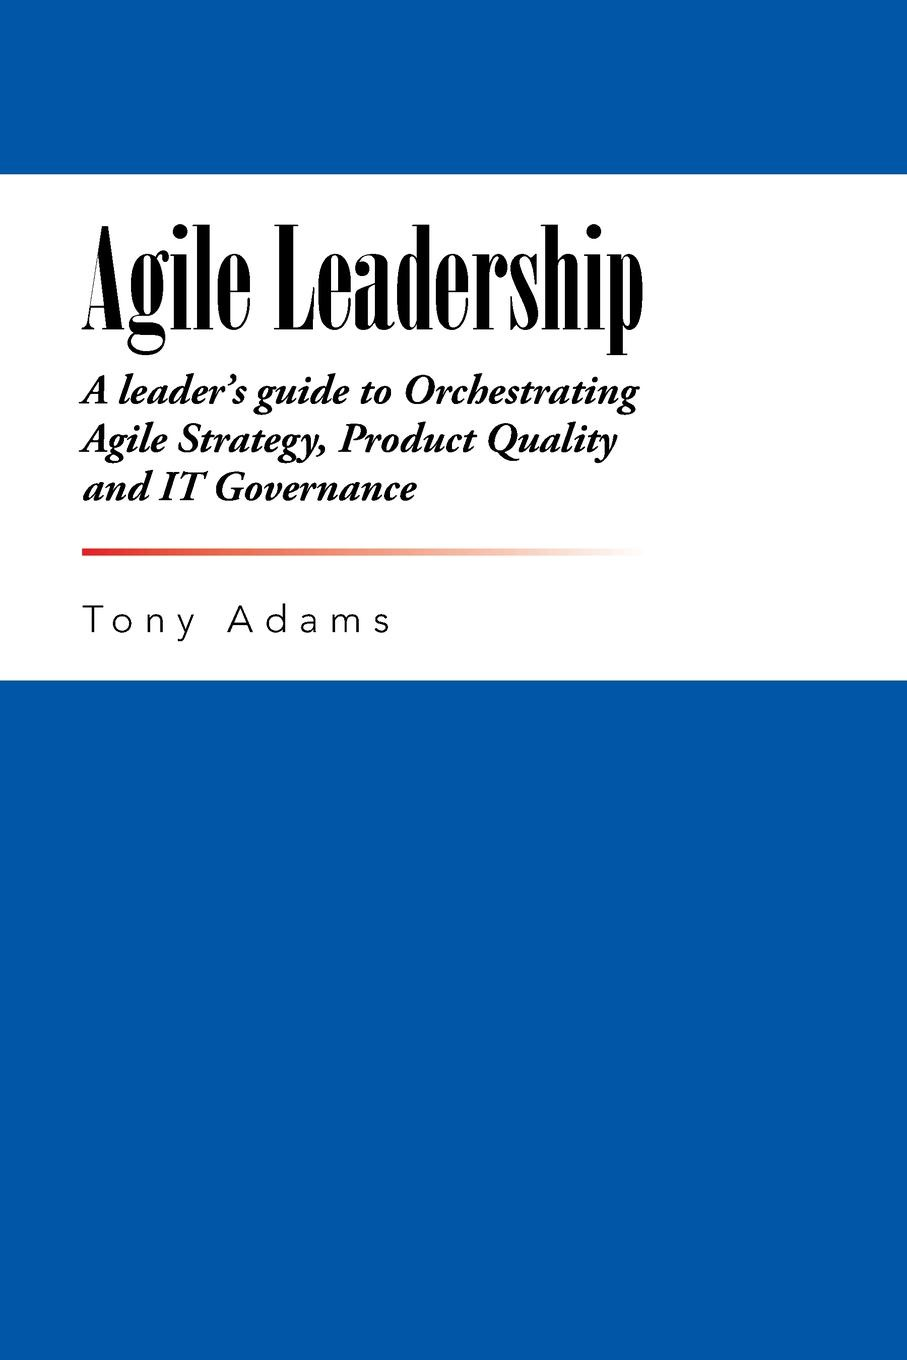 Tony Adams. Agile Leadership. A leader's guide to Orchestrating Agile Strategy, Product Quality and IT Governance